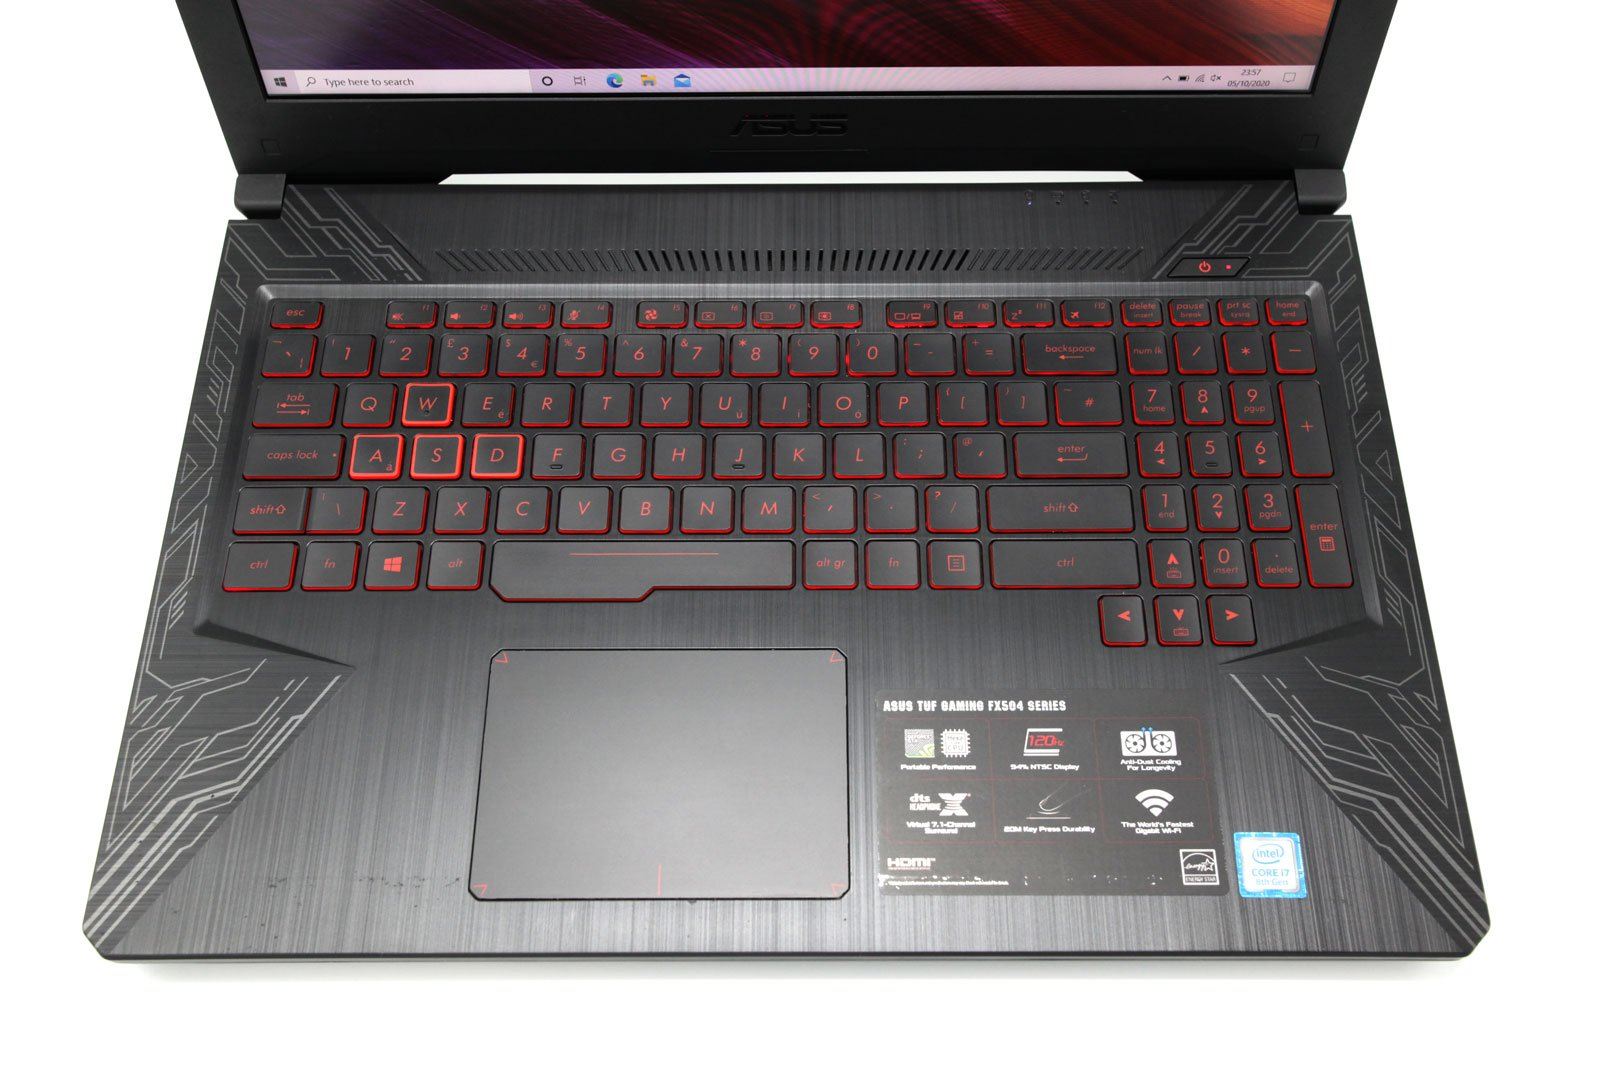 ASUS TUF FX504GM Gaming Laptop: GTX 1060, Core i7-8750H, 256GB+HDD, 8GB RAM - CruiseTech